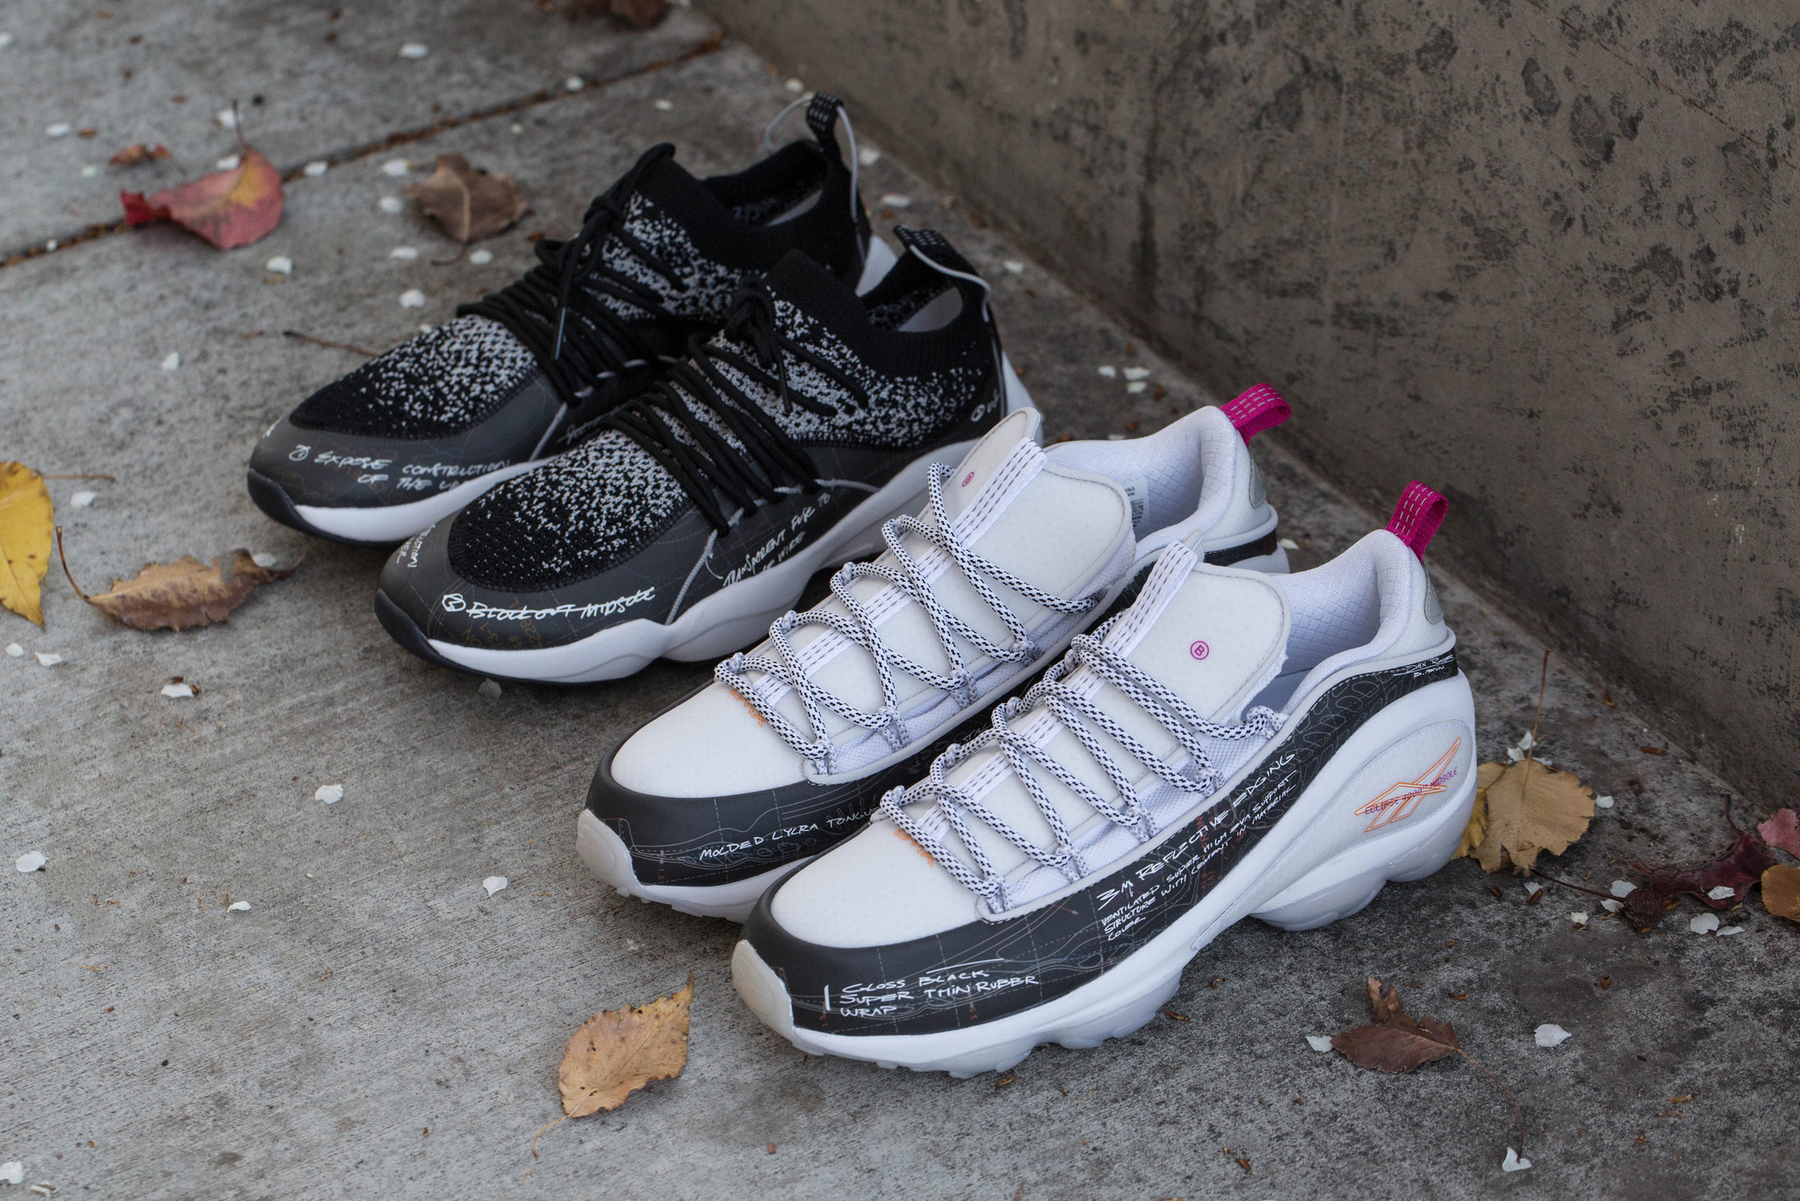 BAIT Reebok DMX Fusion ideation department 1